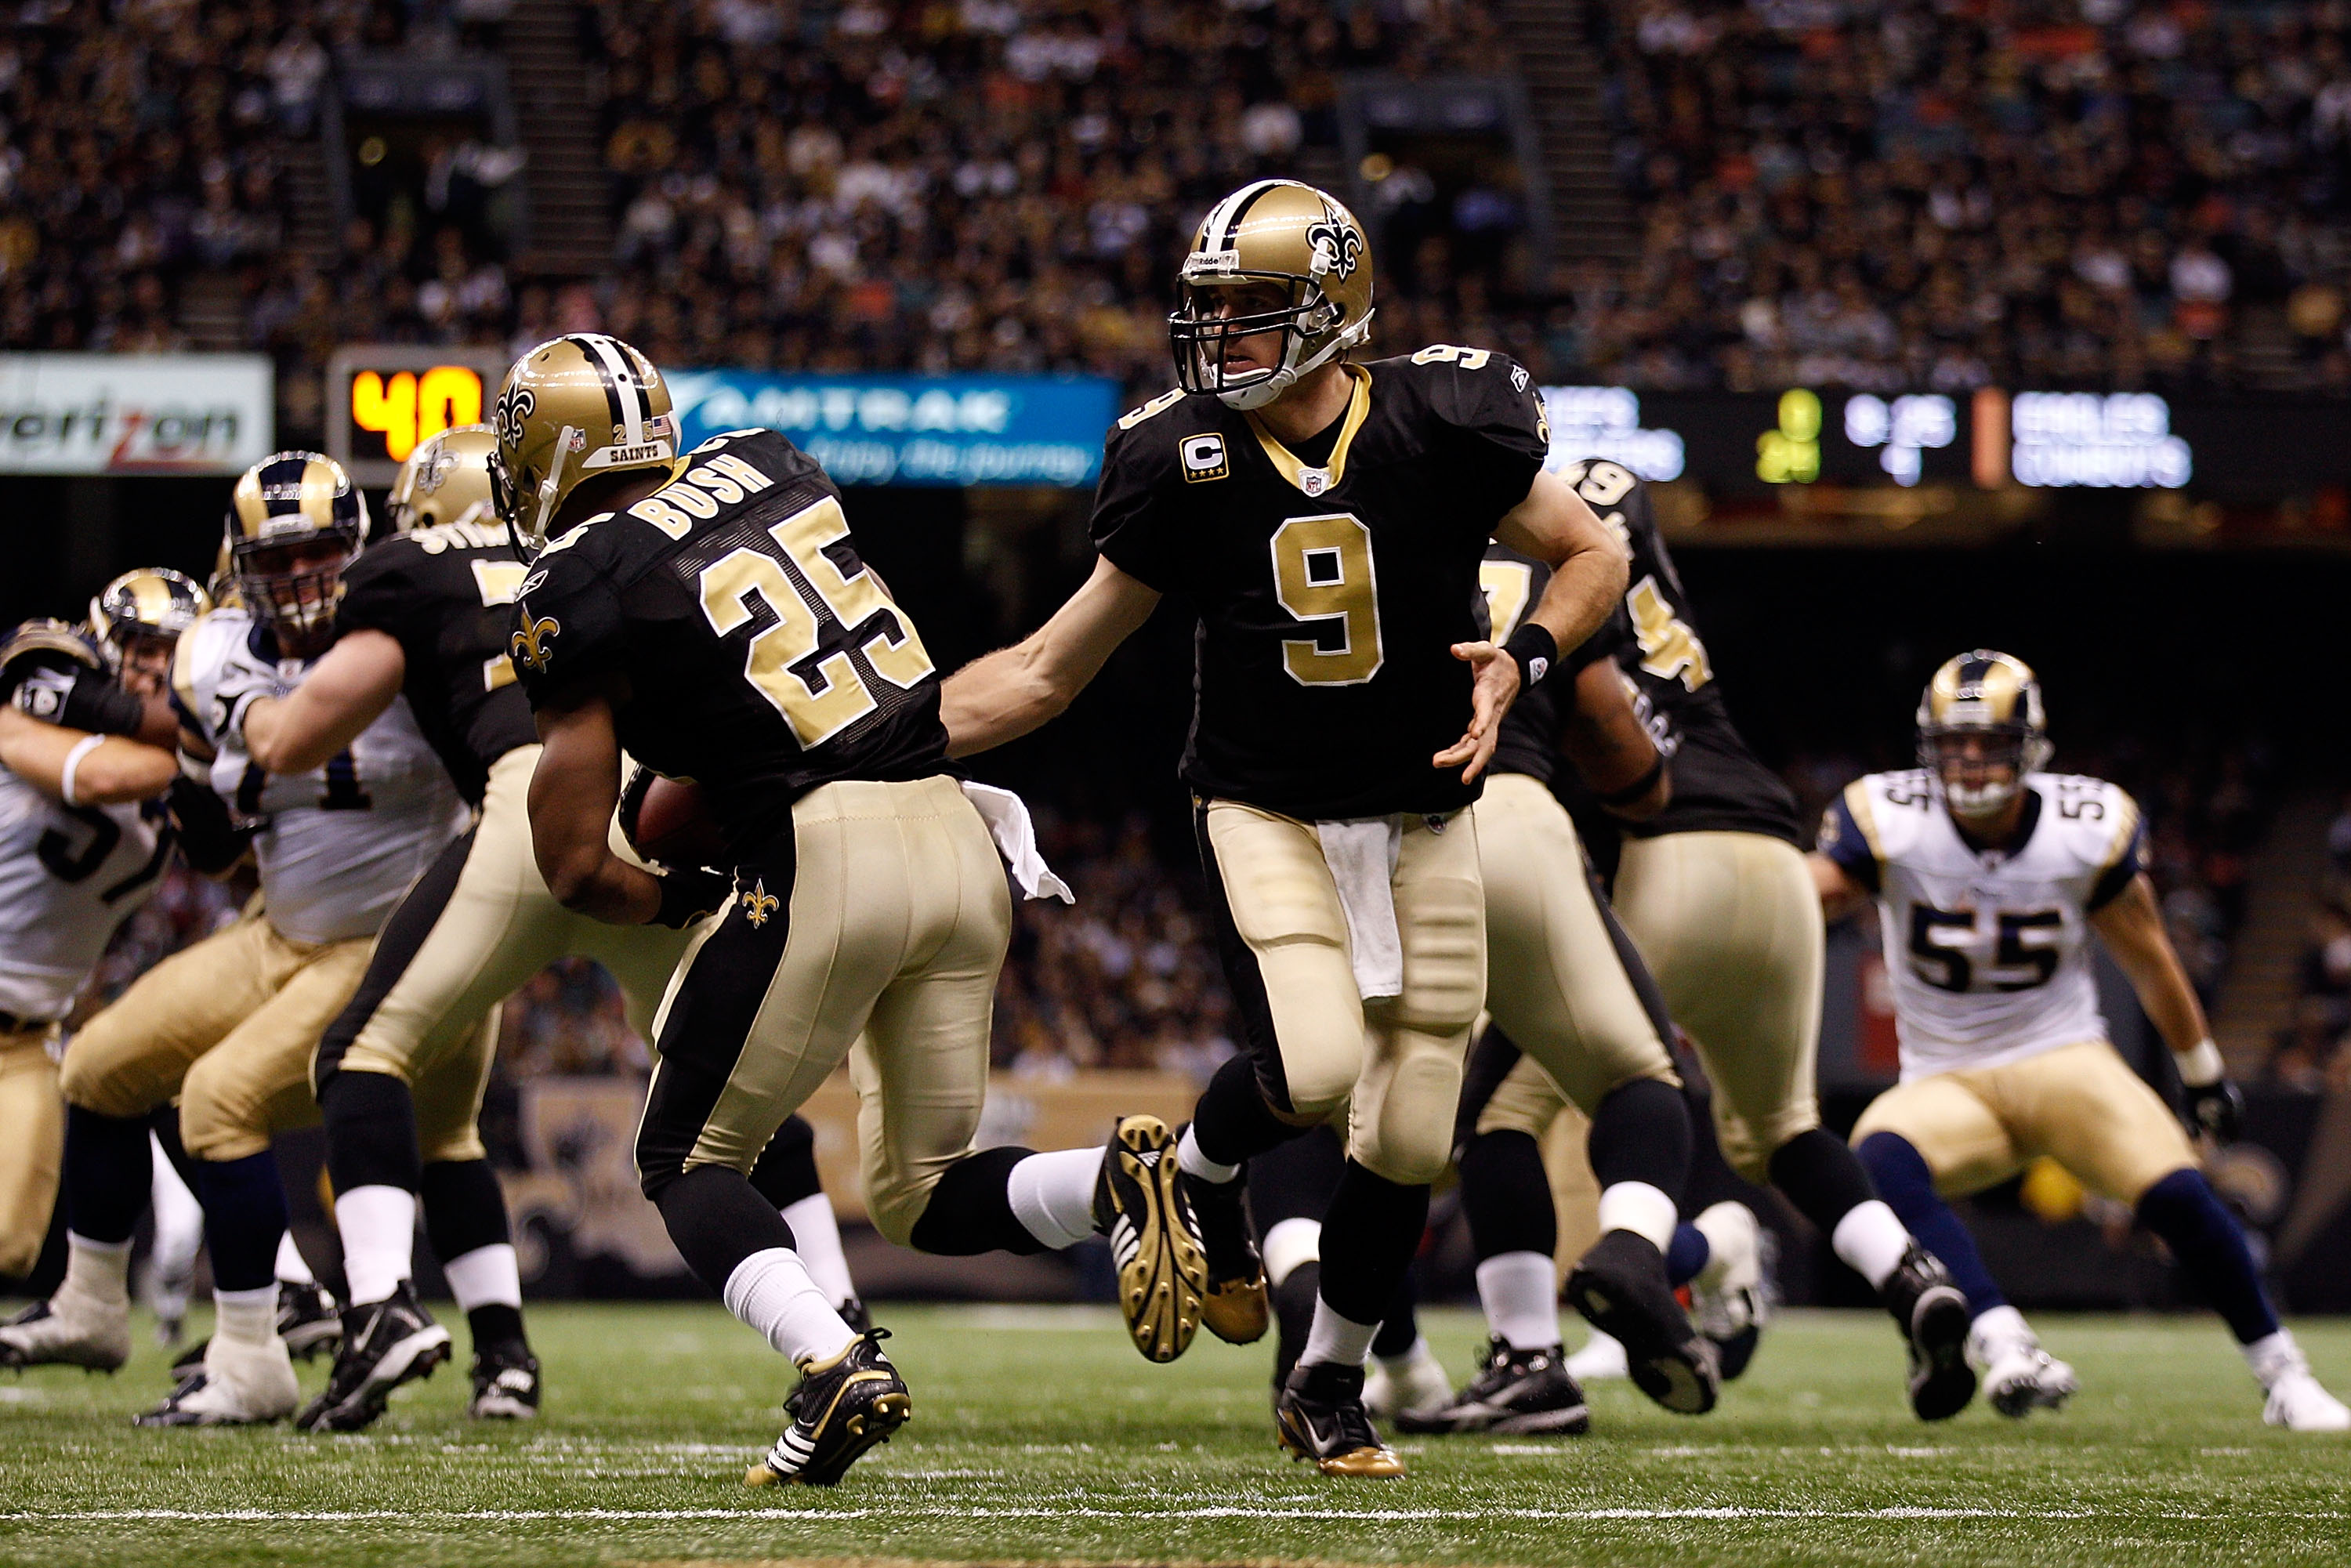 NEW ORLEANS, LA - DECEMBER 12:  Drew Brees #9 hands the ball off to Reggie Bush #25 of the New Orleans Saints during the game against the St. Louis Rams at the Louisiana Superdome on December 12, 2010 in New Orleans, Louisiana. The Saints defeated the Ram